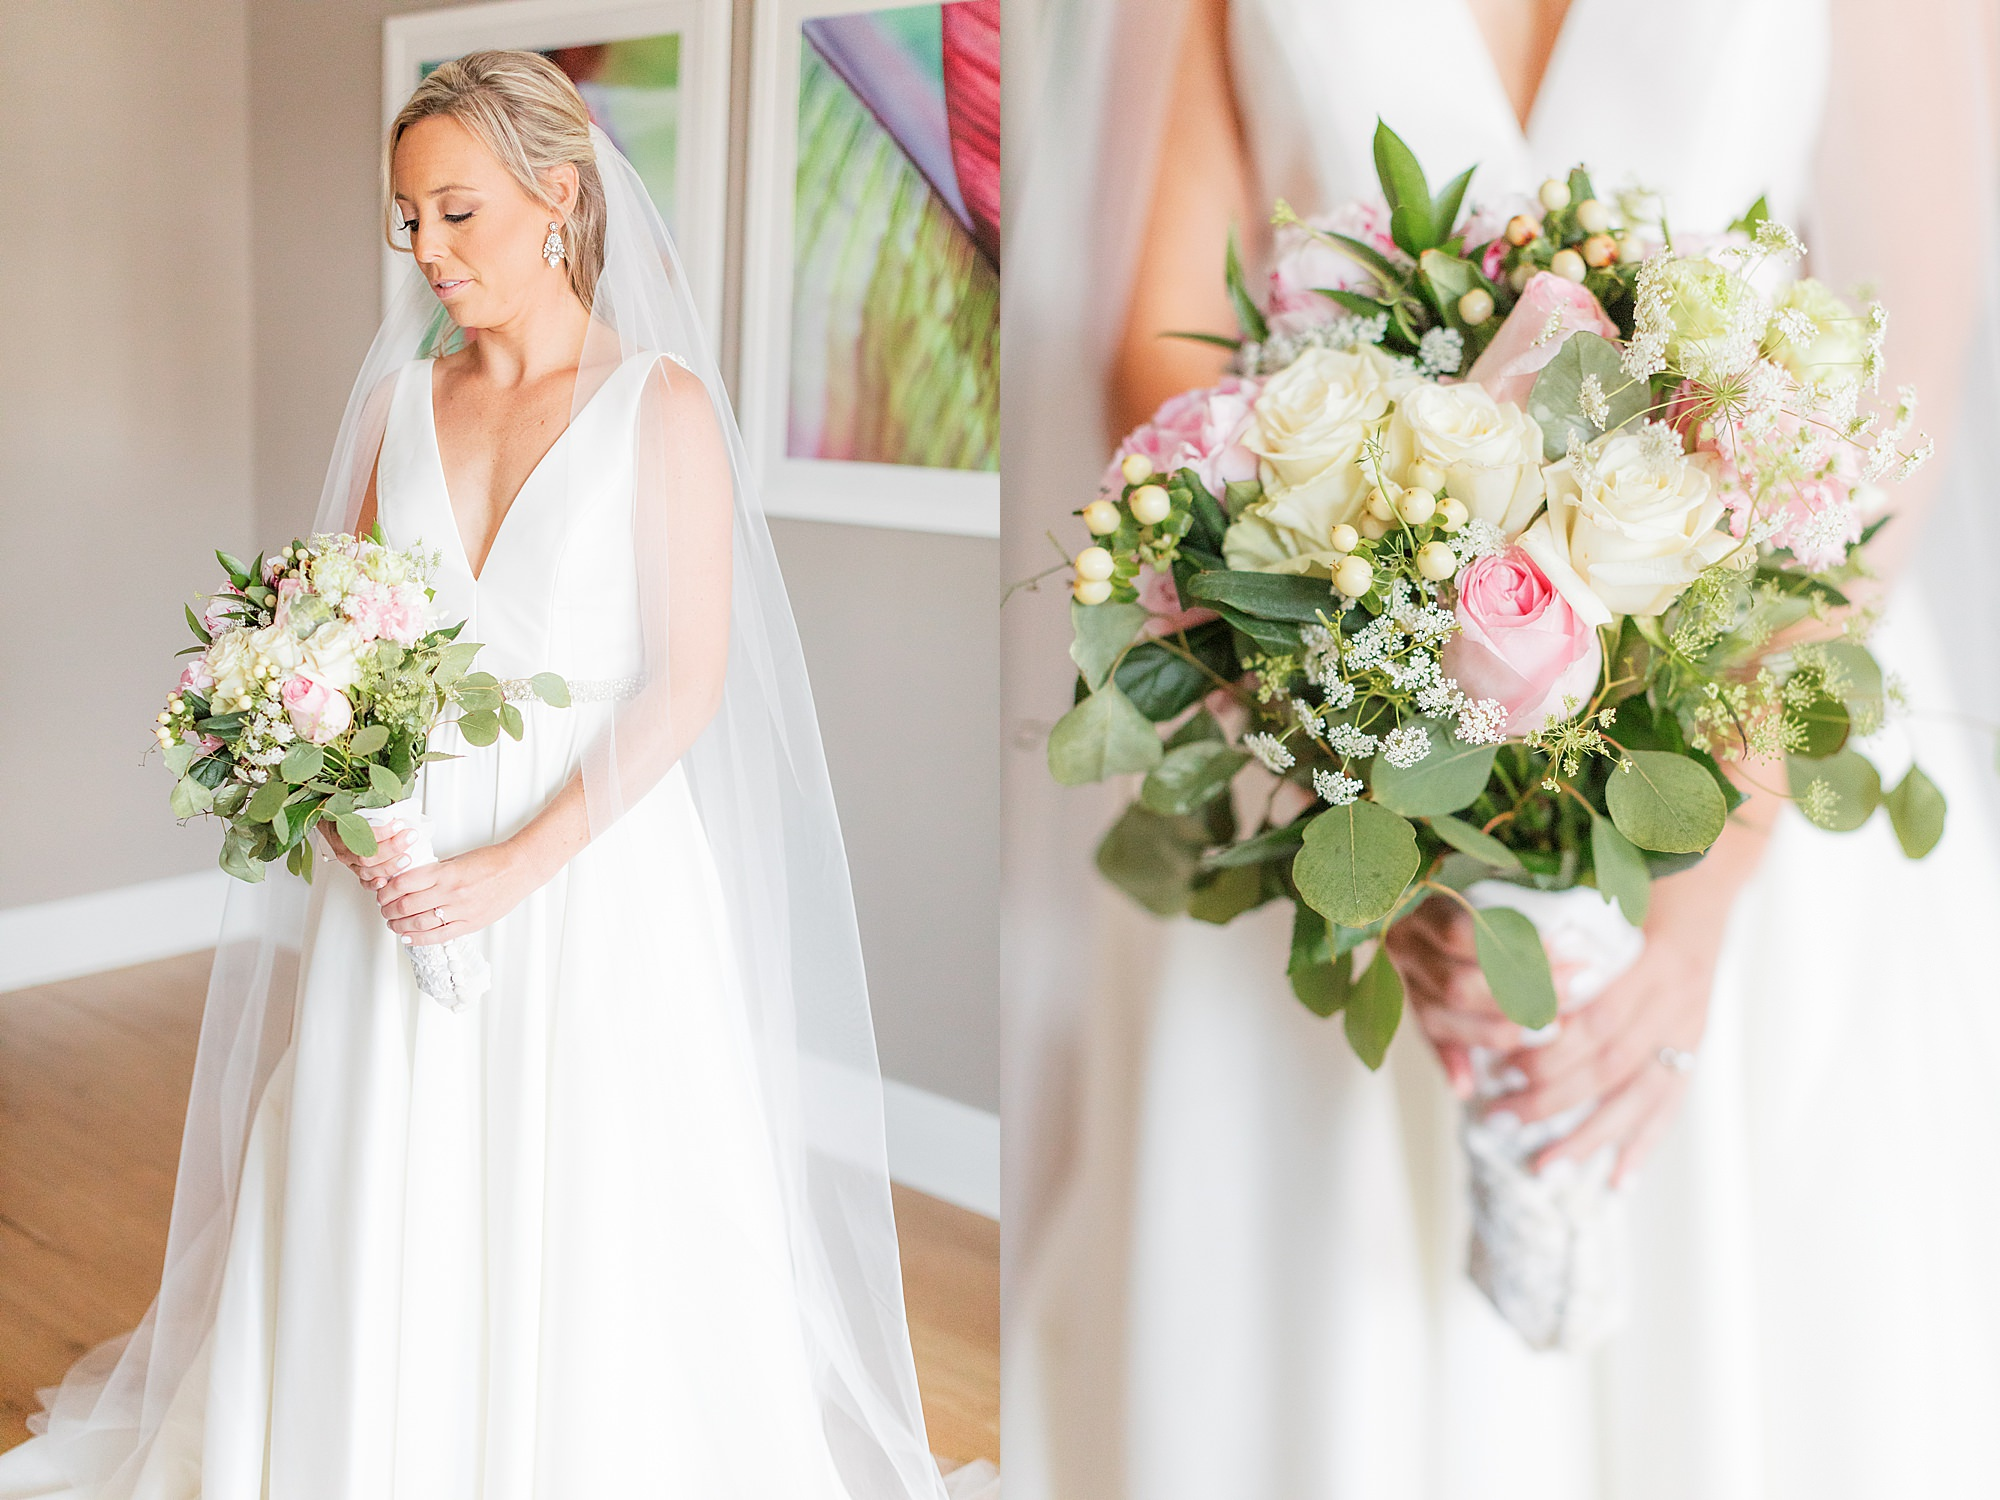 Natural and Vibrant Wedding Photography at the Reeds in Stone Harbor NJ by Magdalena Studios 0014